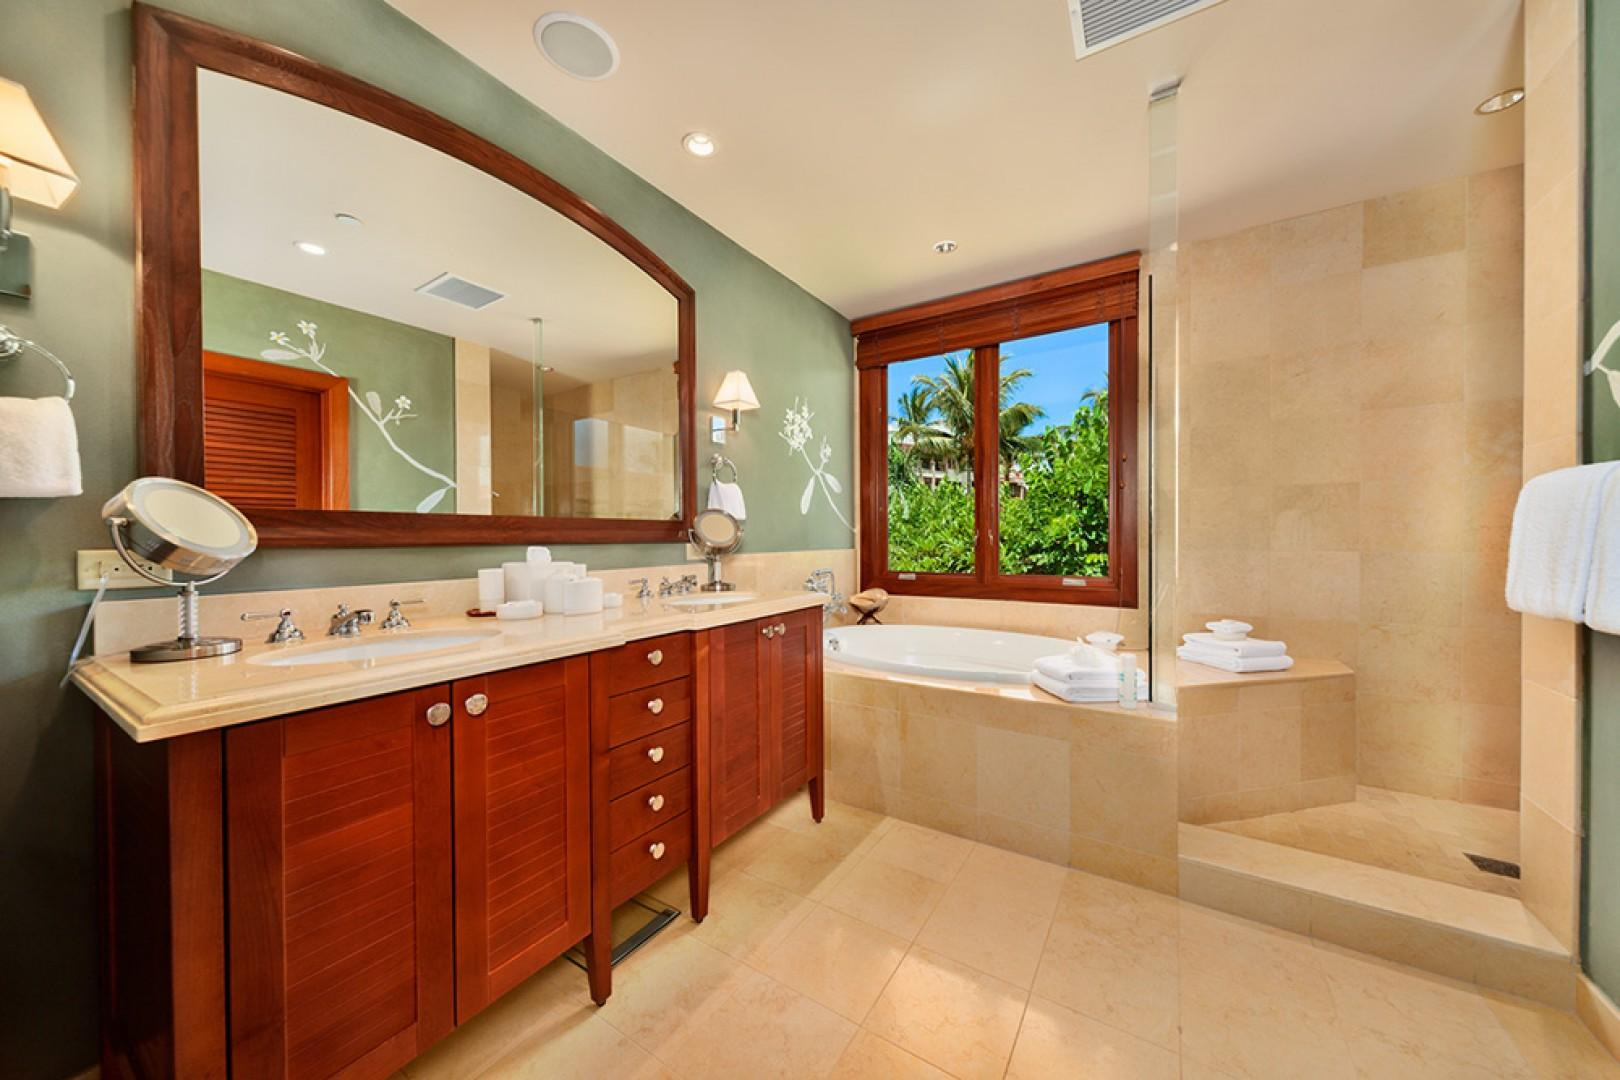 A201 Royal Ilima - The Second Master Bedroom En-Suite Private Bath with Deep Soaking Tub, Separate Shower, Private WC